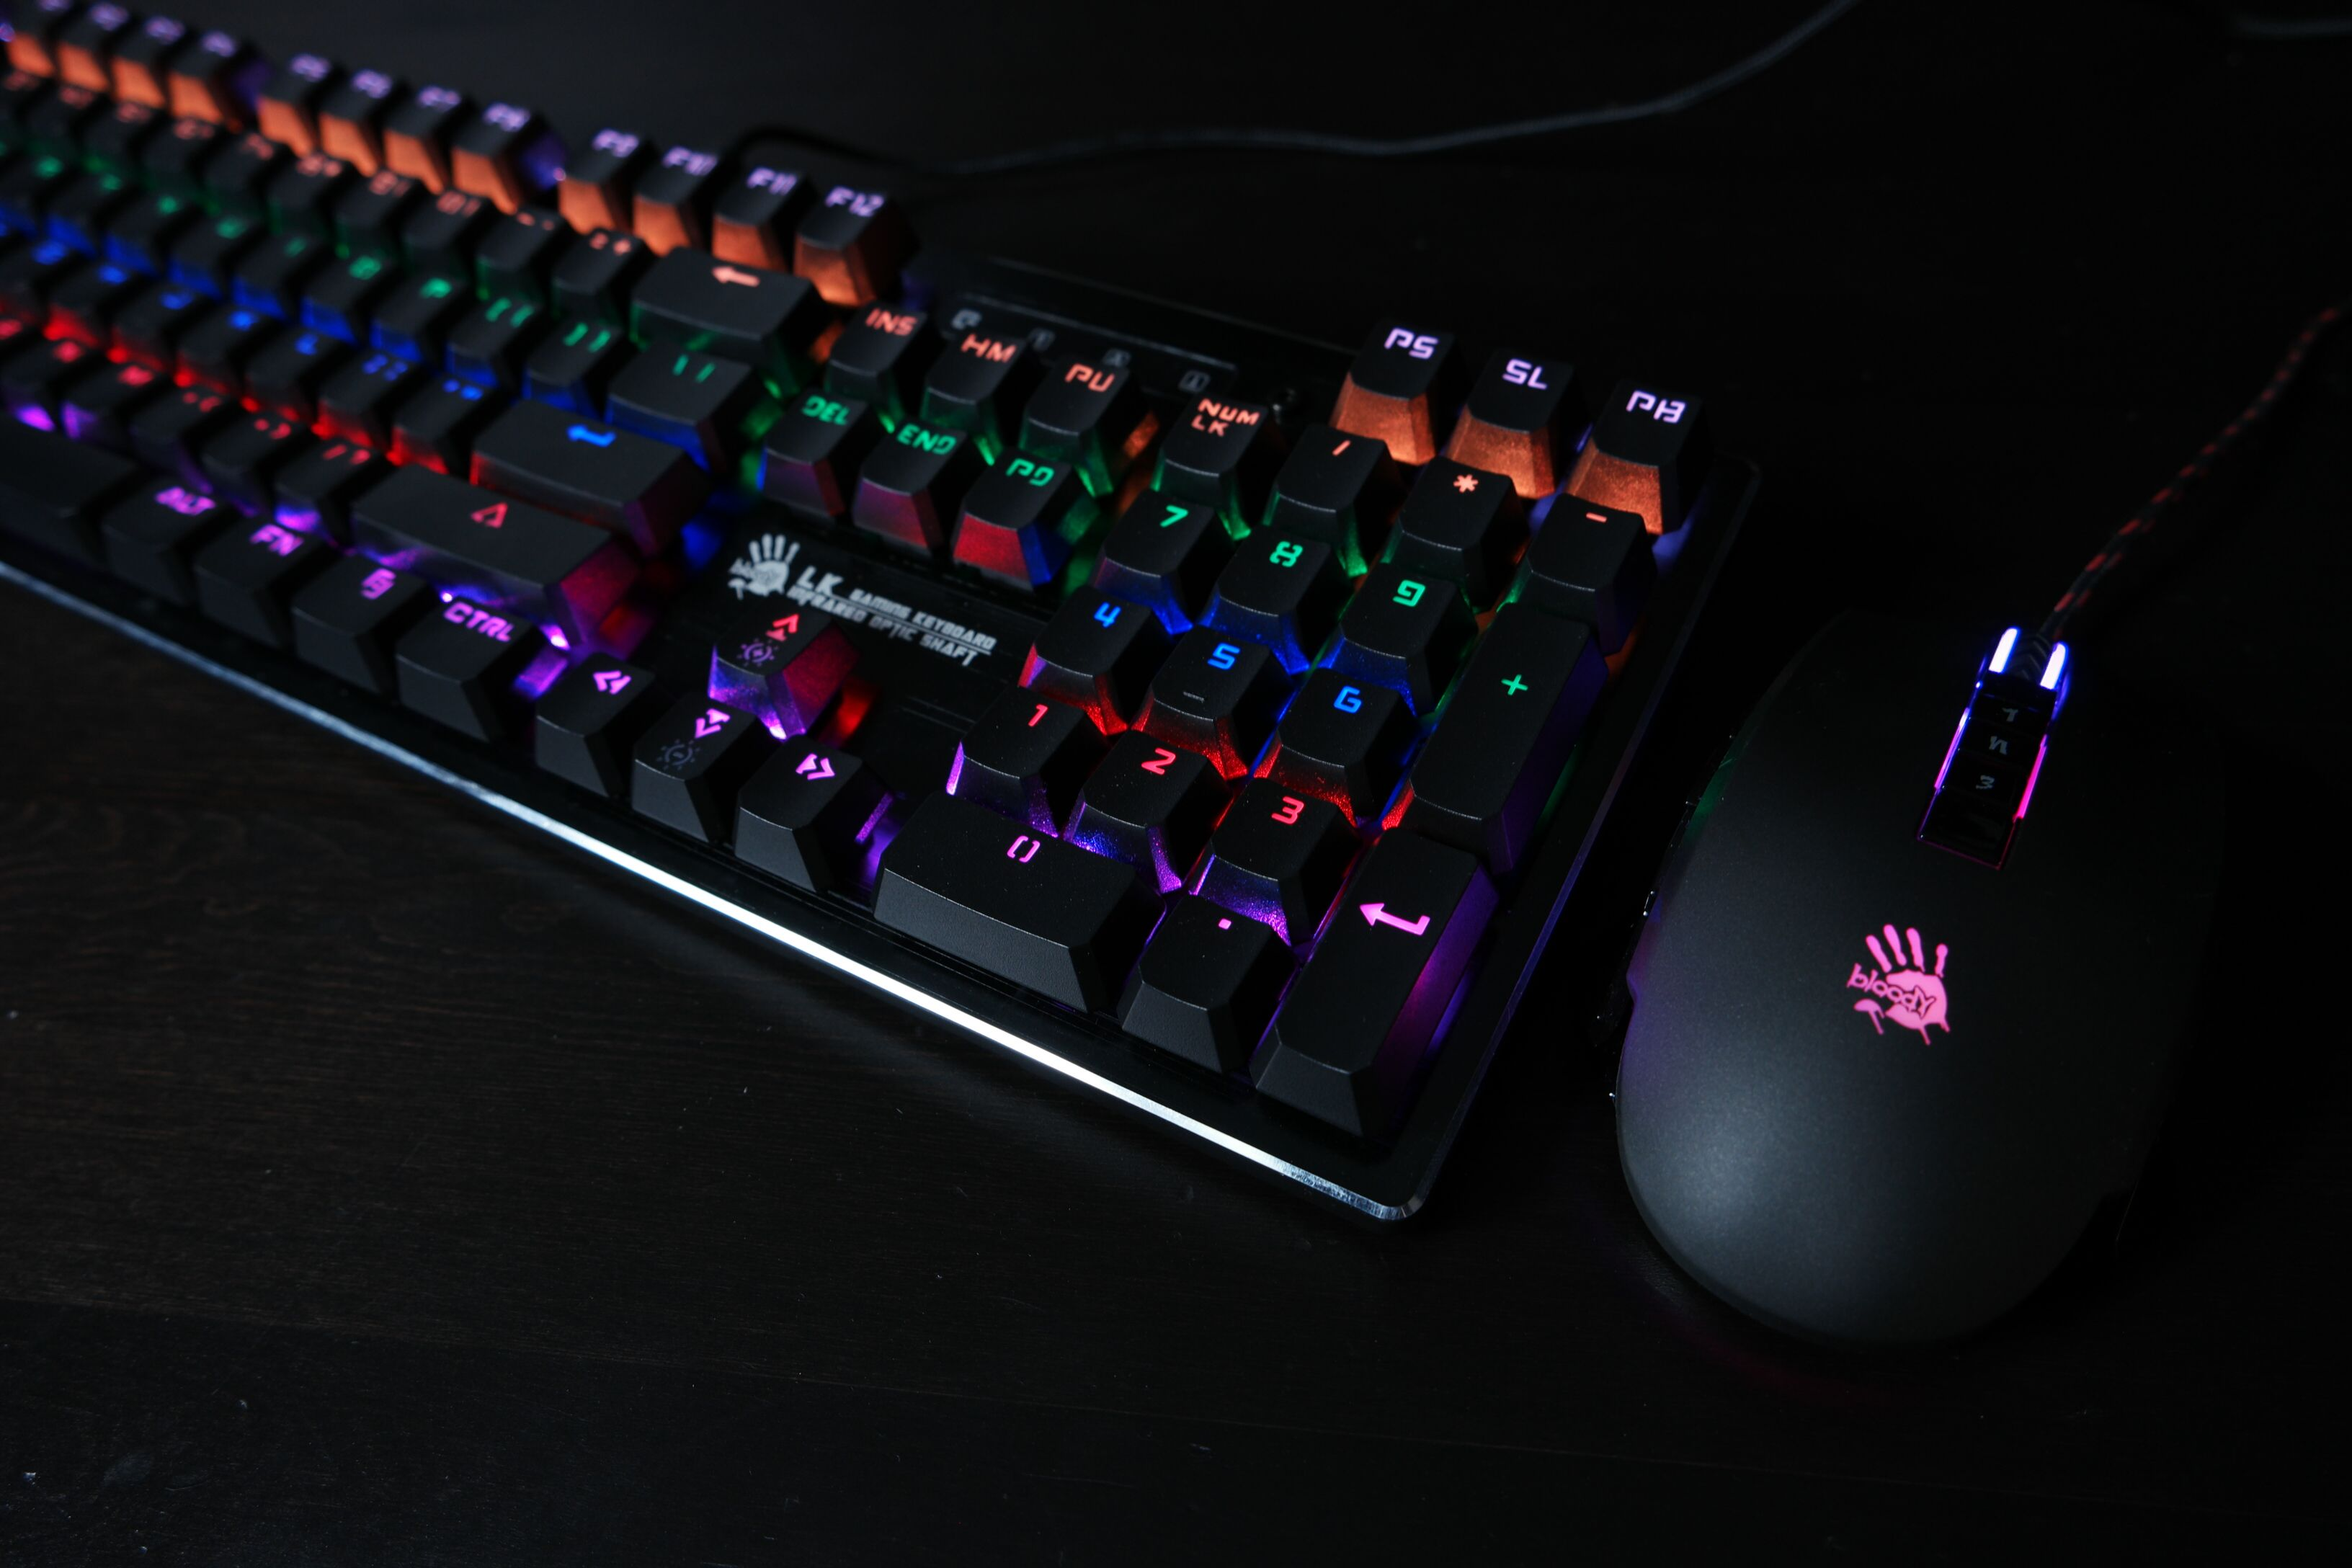 bloodygaming Light Strike is known to use Optical Laser in